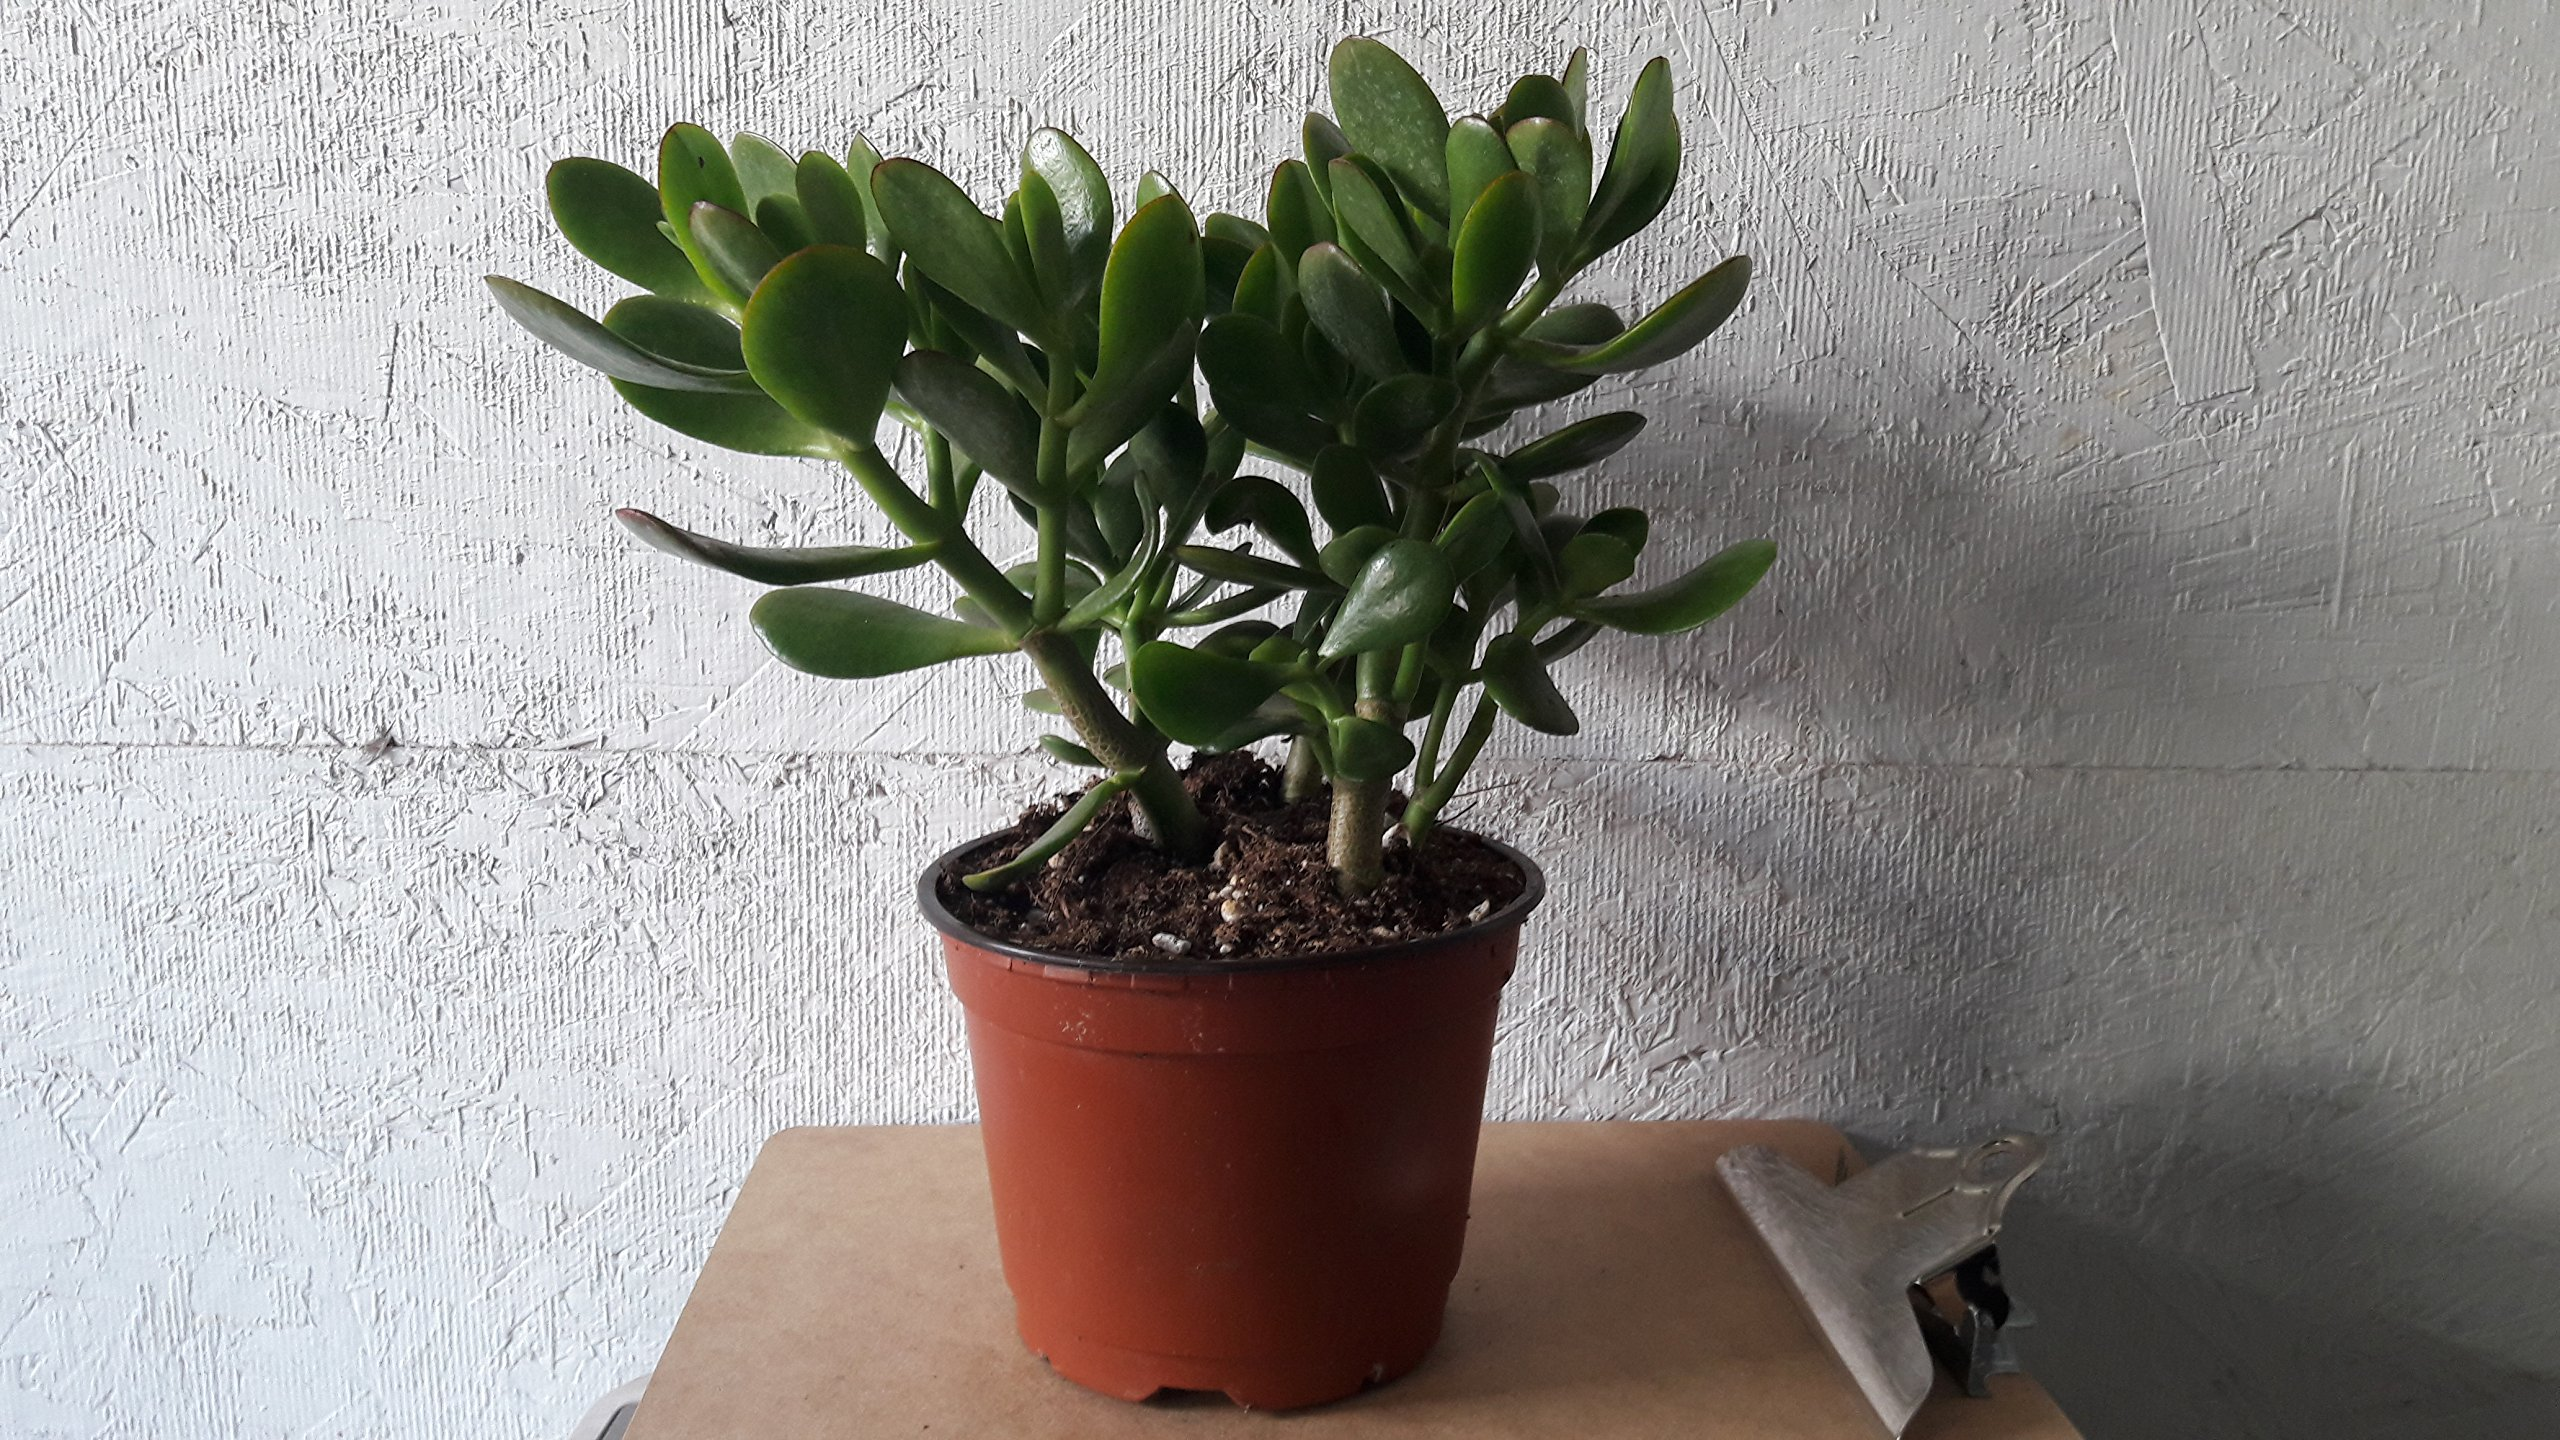 Jade Plant - Crassula ovuta - Easy to Grow - 6'' Pot from jmbamboo